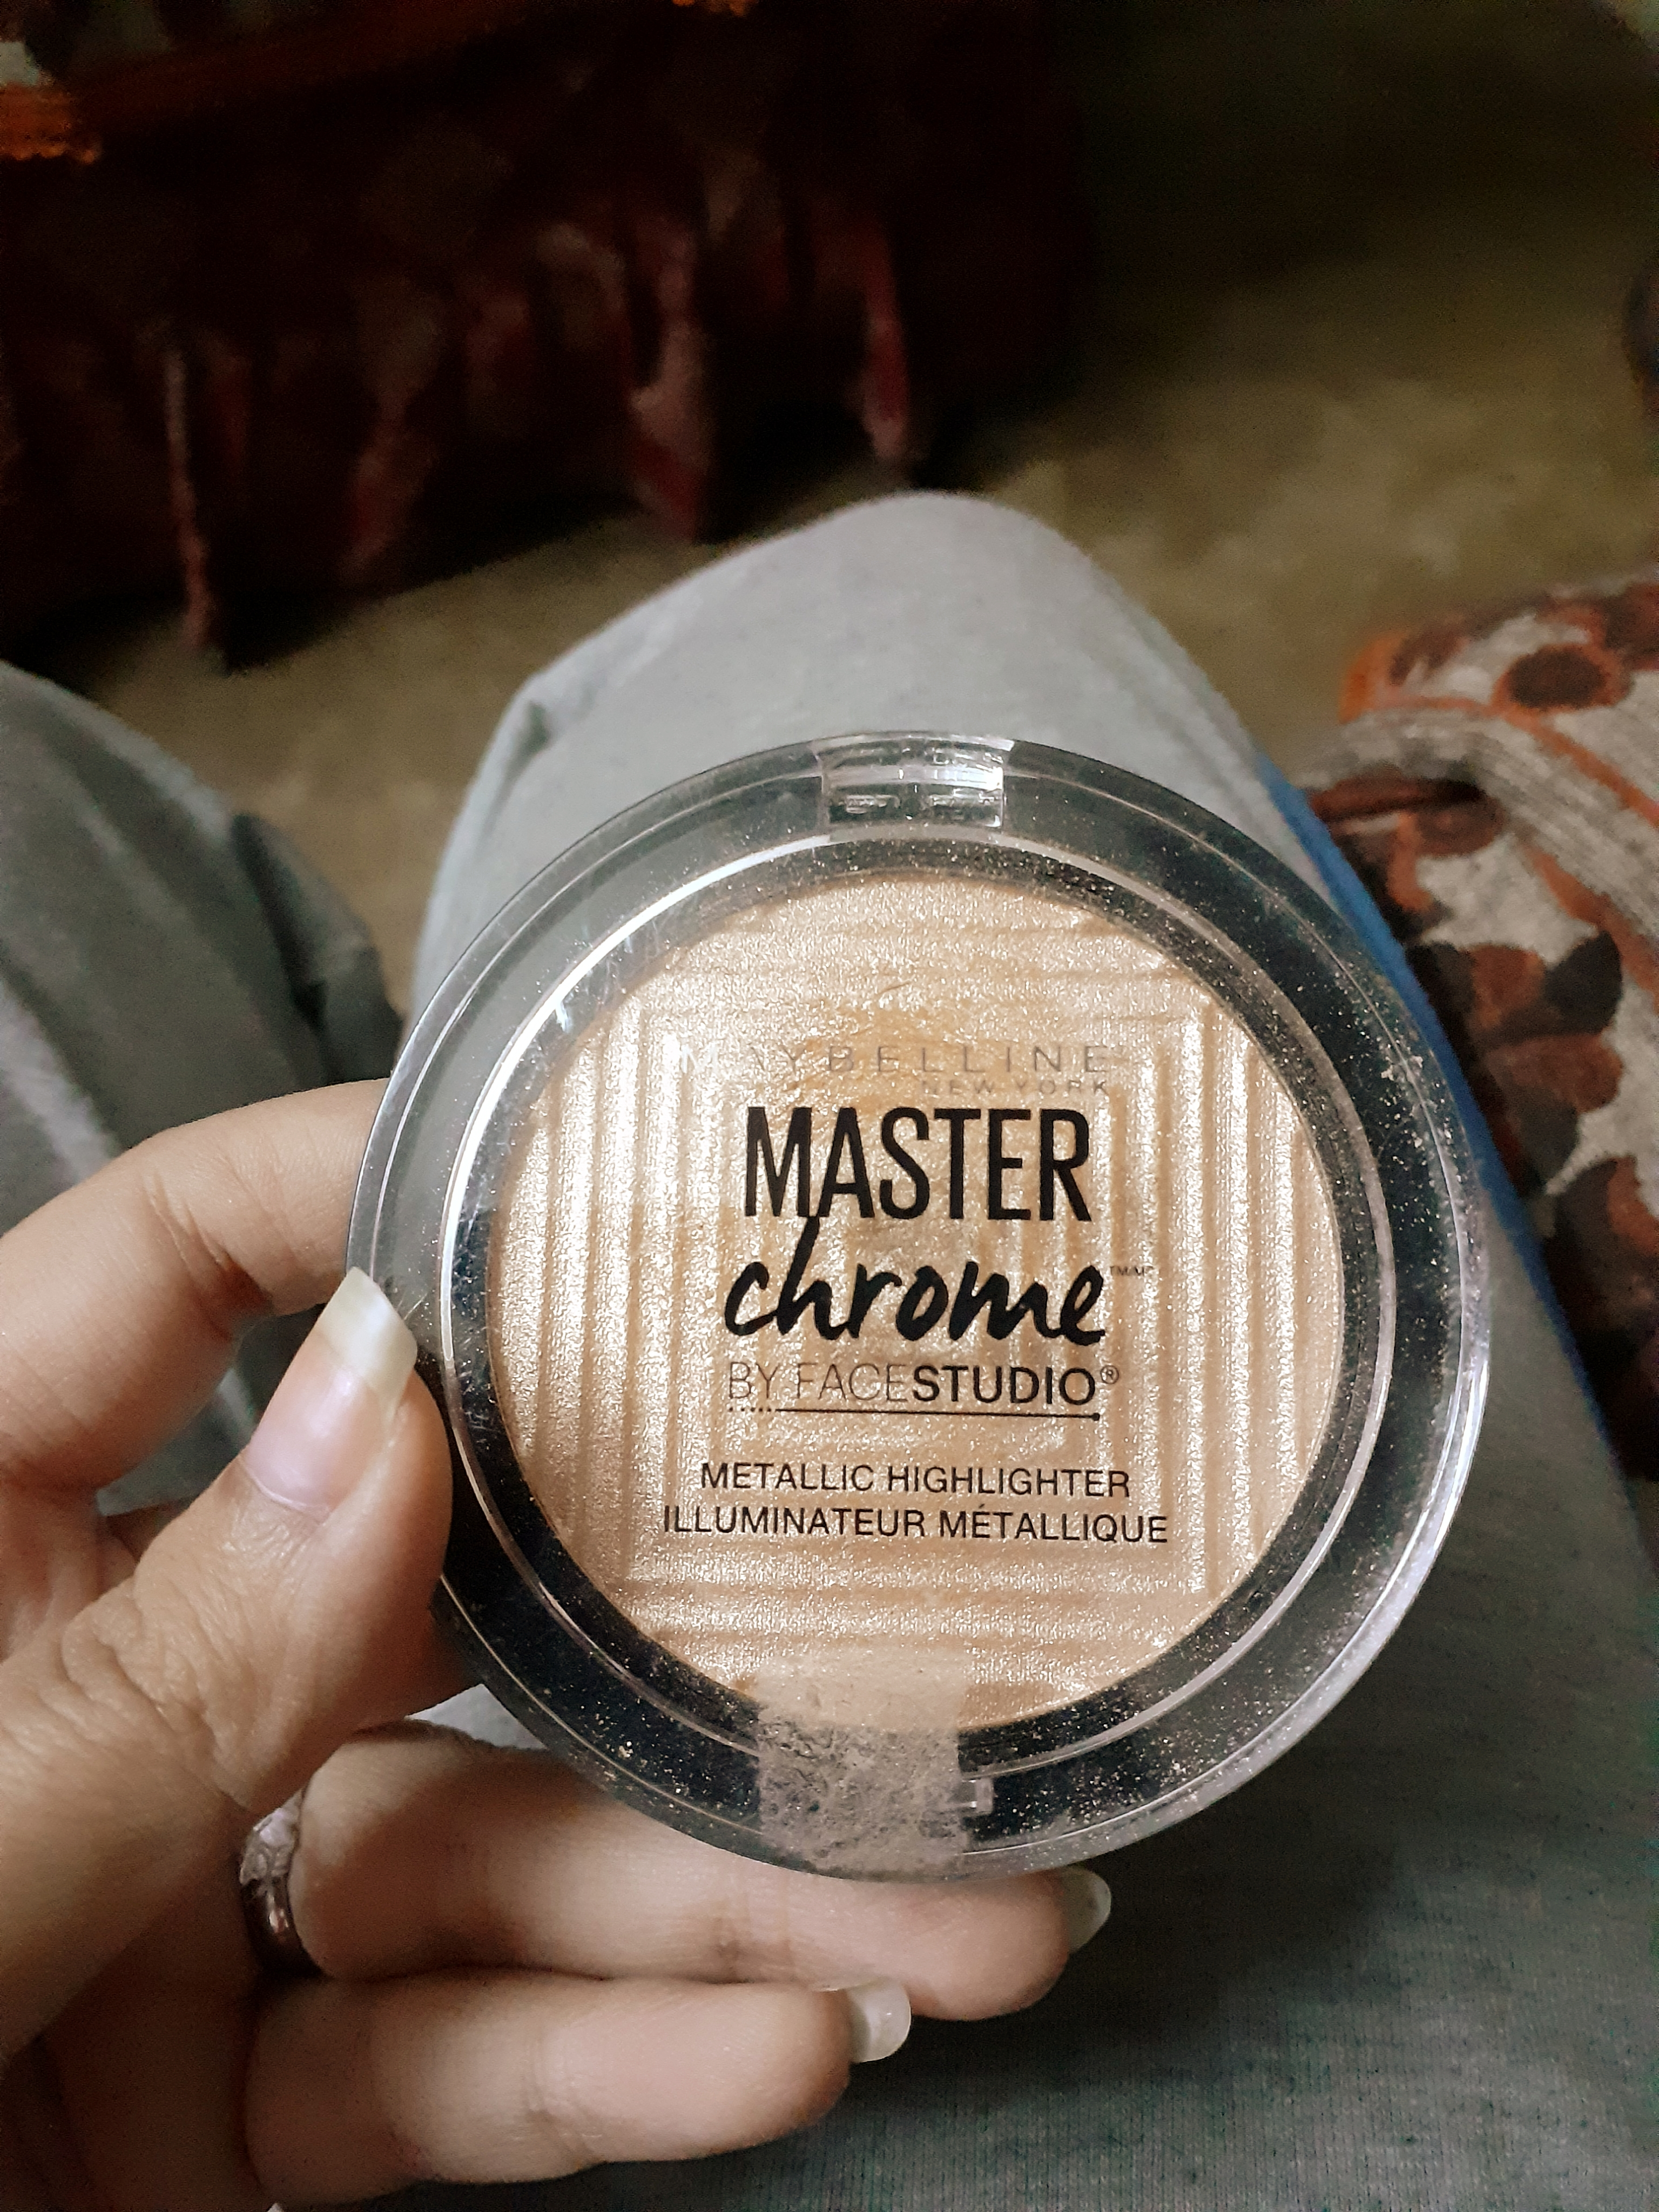 Maybelline Facestudio Master Chrome Metallic Highlighter-The best highlighter-By madhurima7